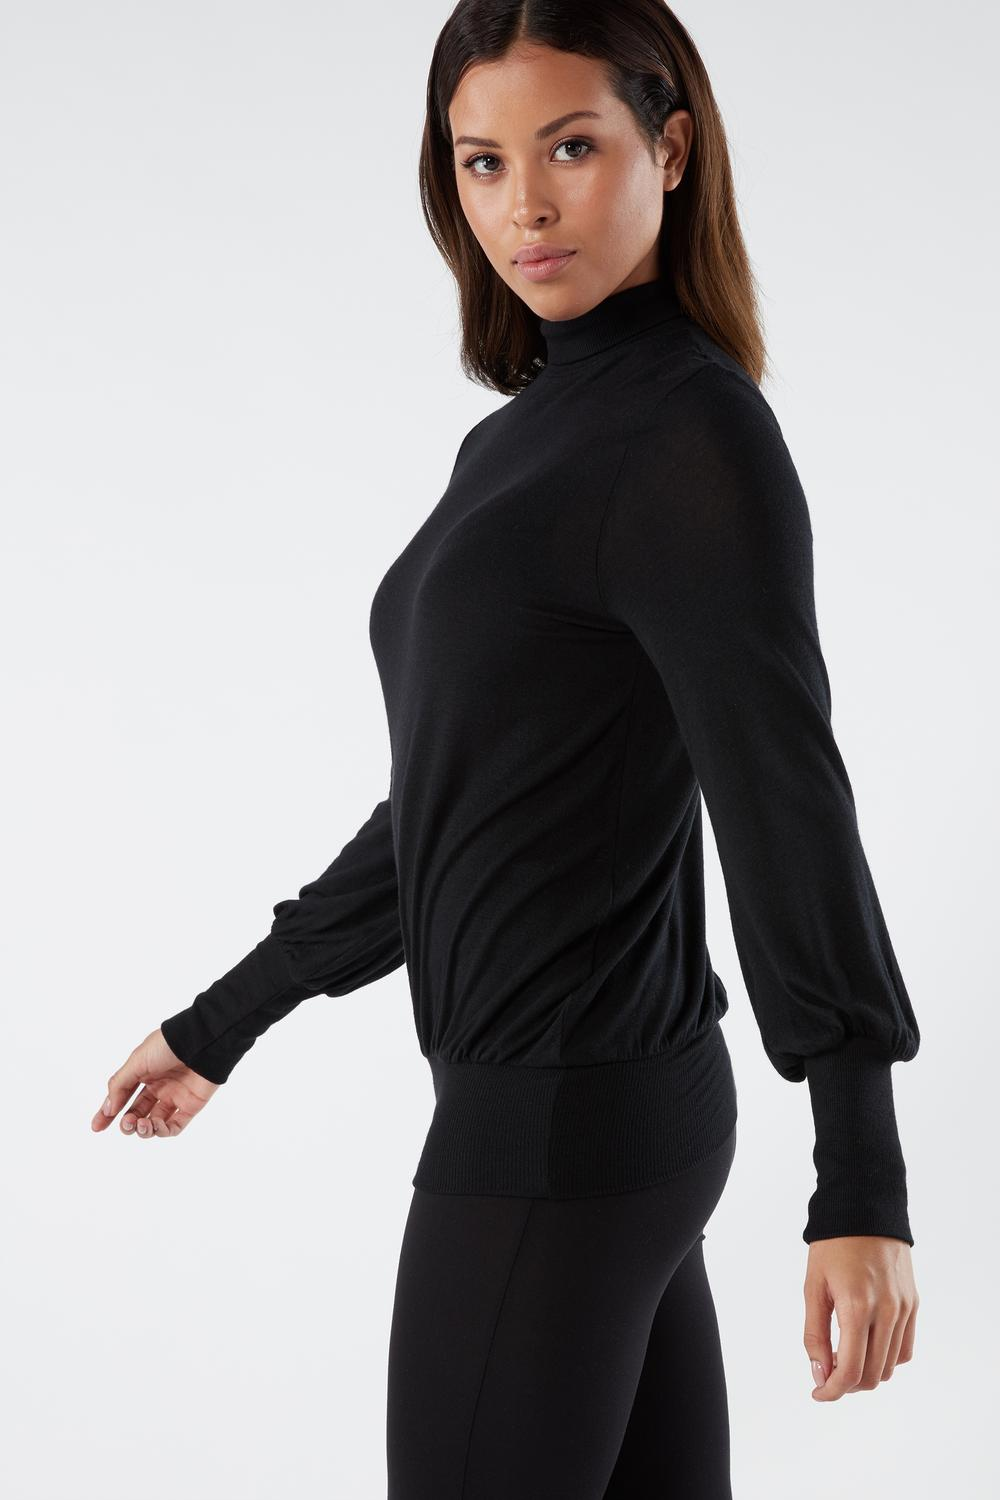 Ultralight Modal and Cashmere Long-sleeved Shirt